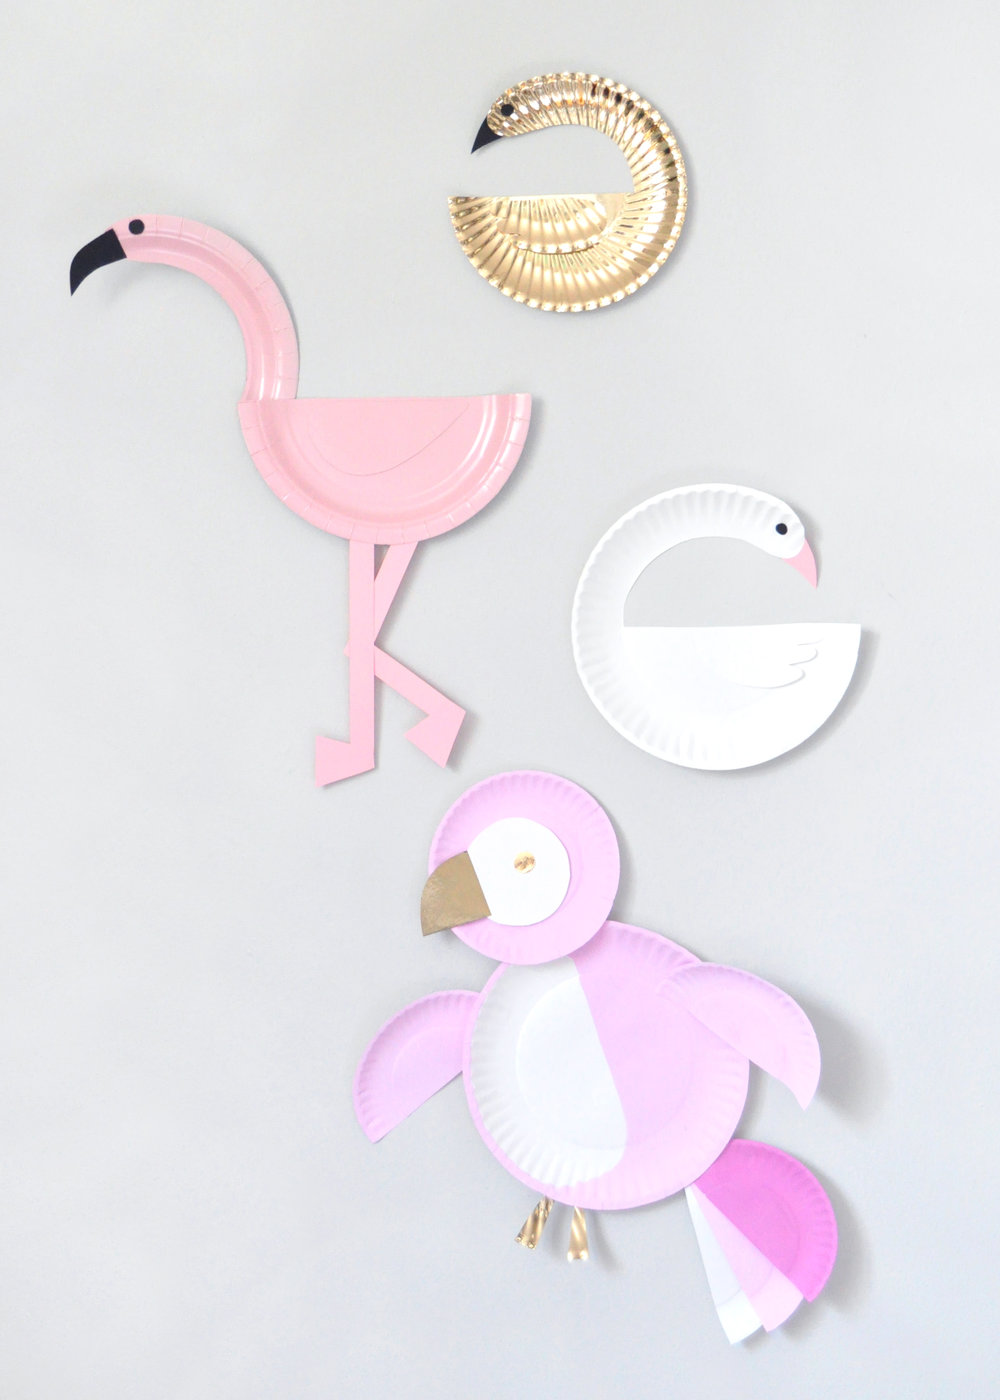 paperplate.birds.done6.jpg & Paper Plate Birds \u2014 Snowdrop \u0026 Co